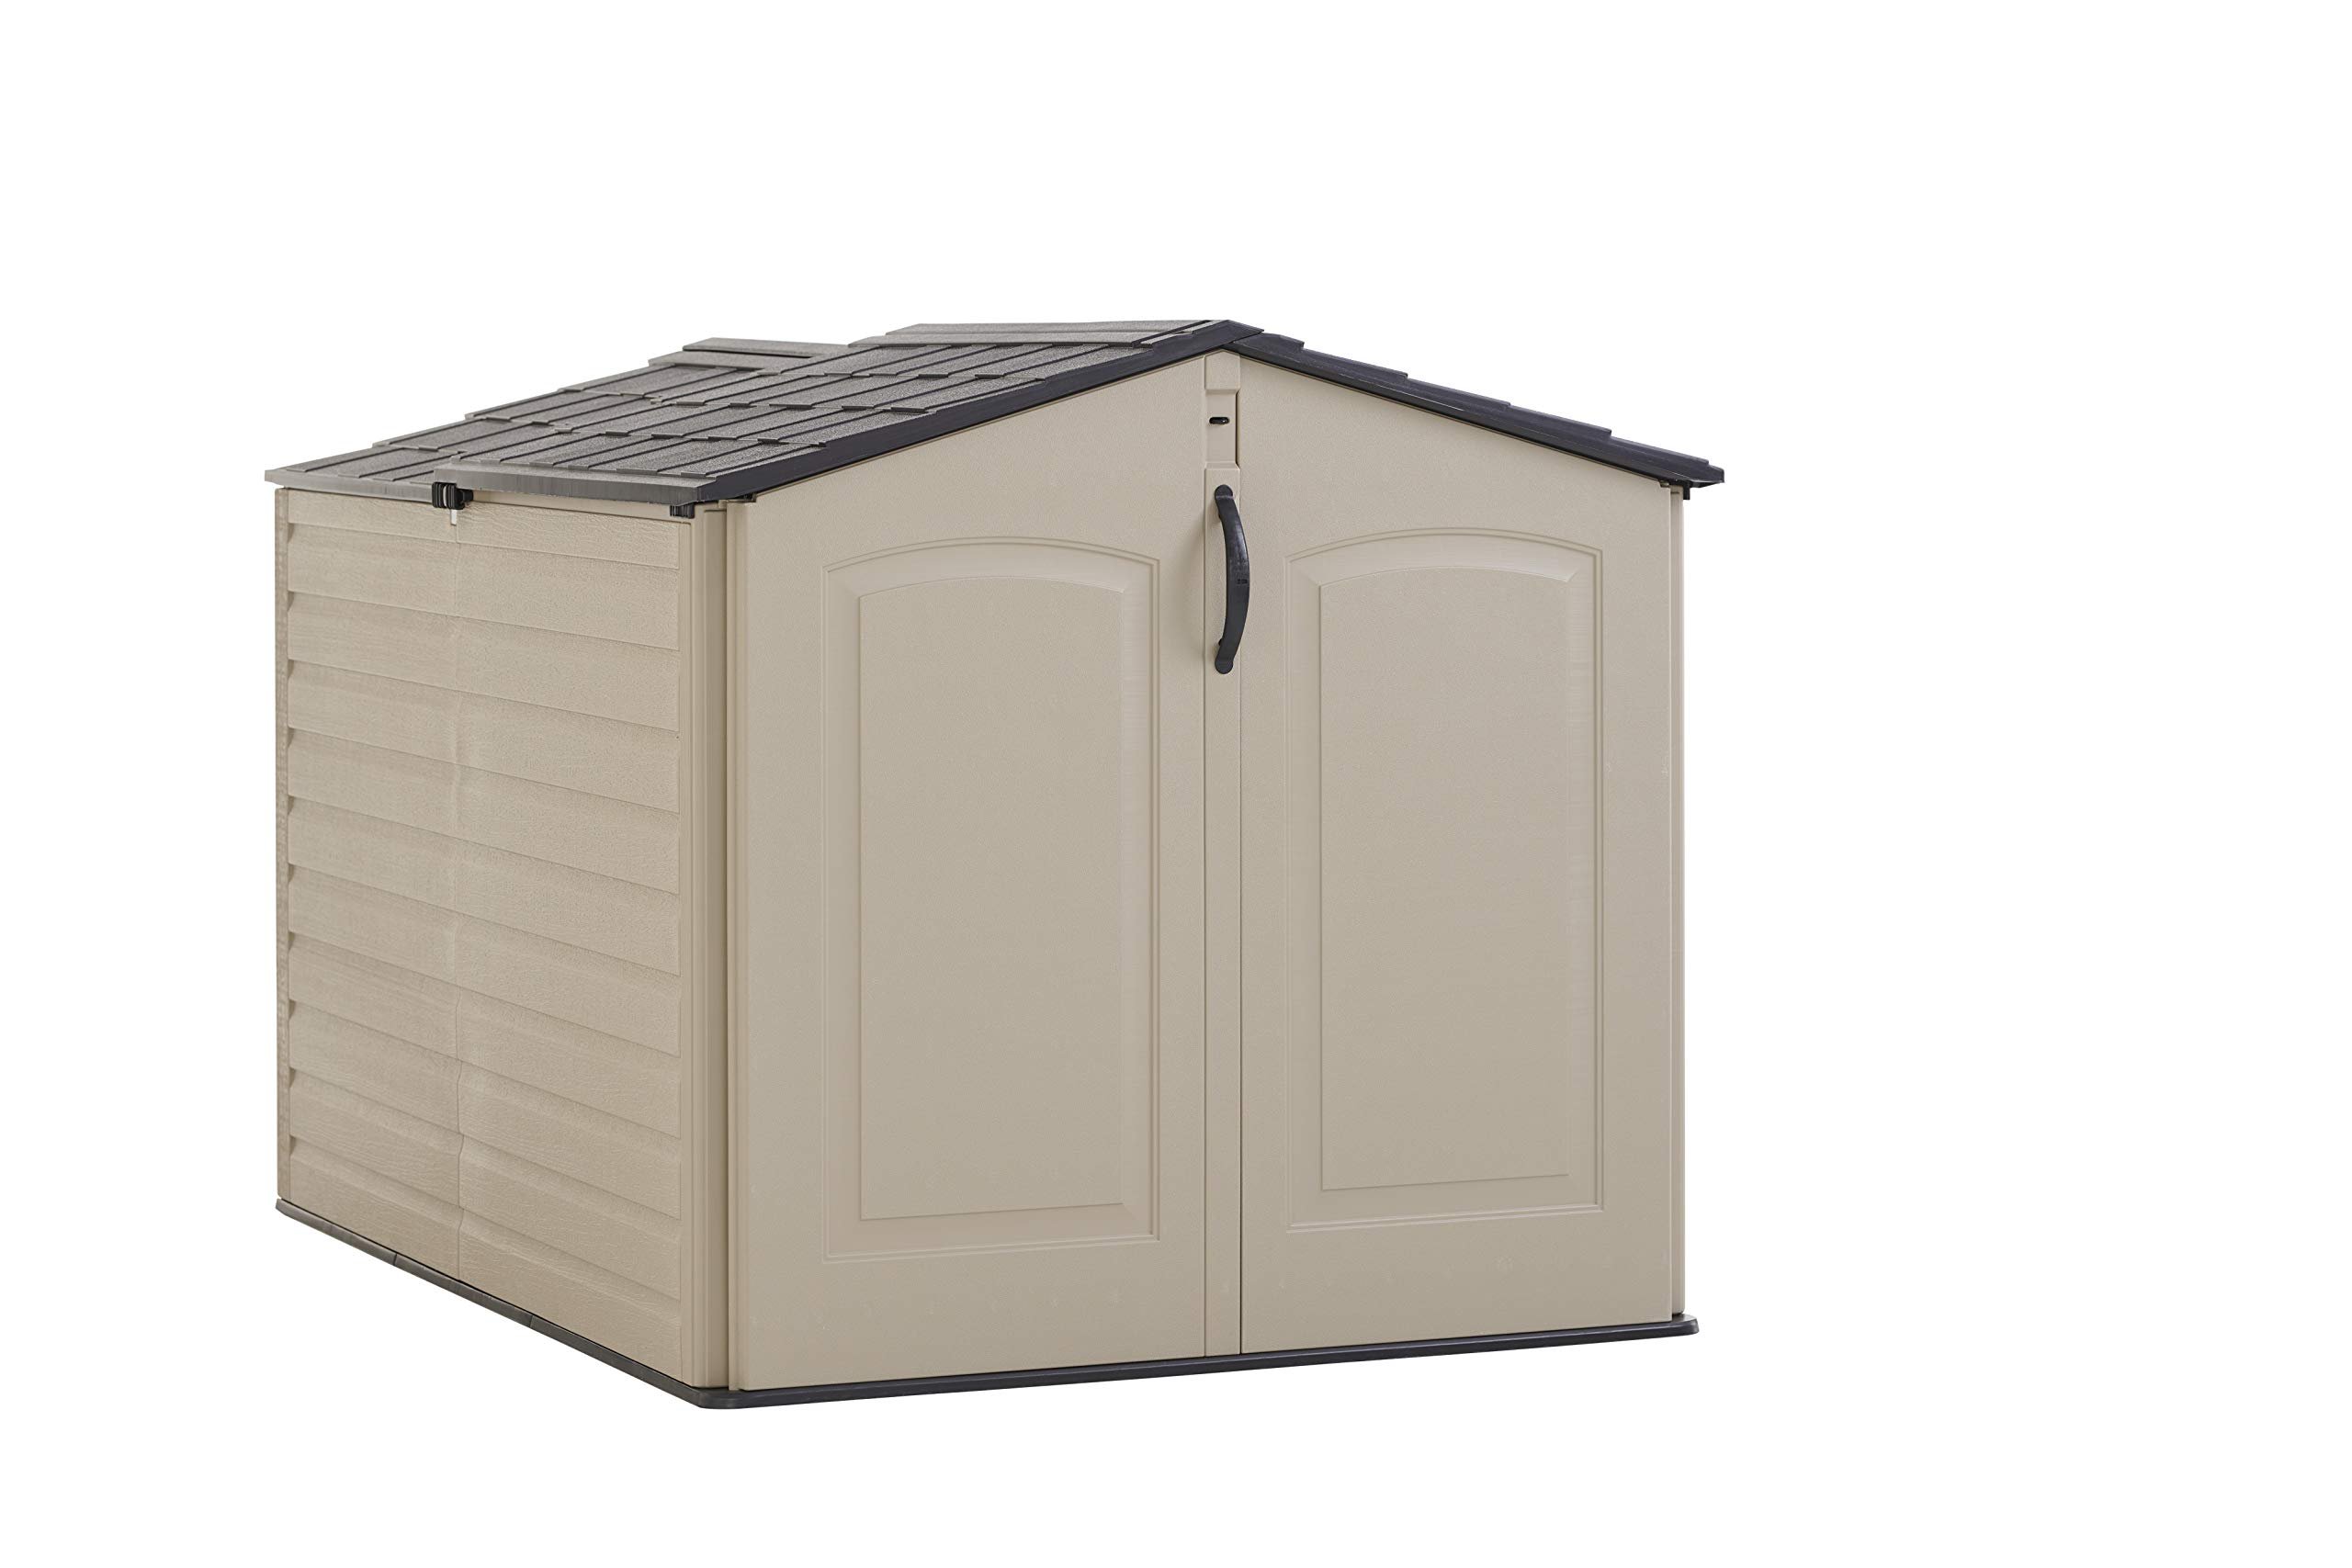 Rubbermaid Roughneck Storage Shed, Slide-Lid, Faint Maple and Brown